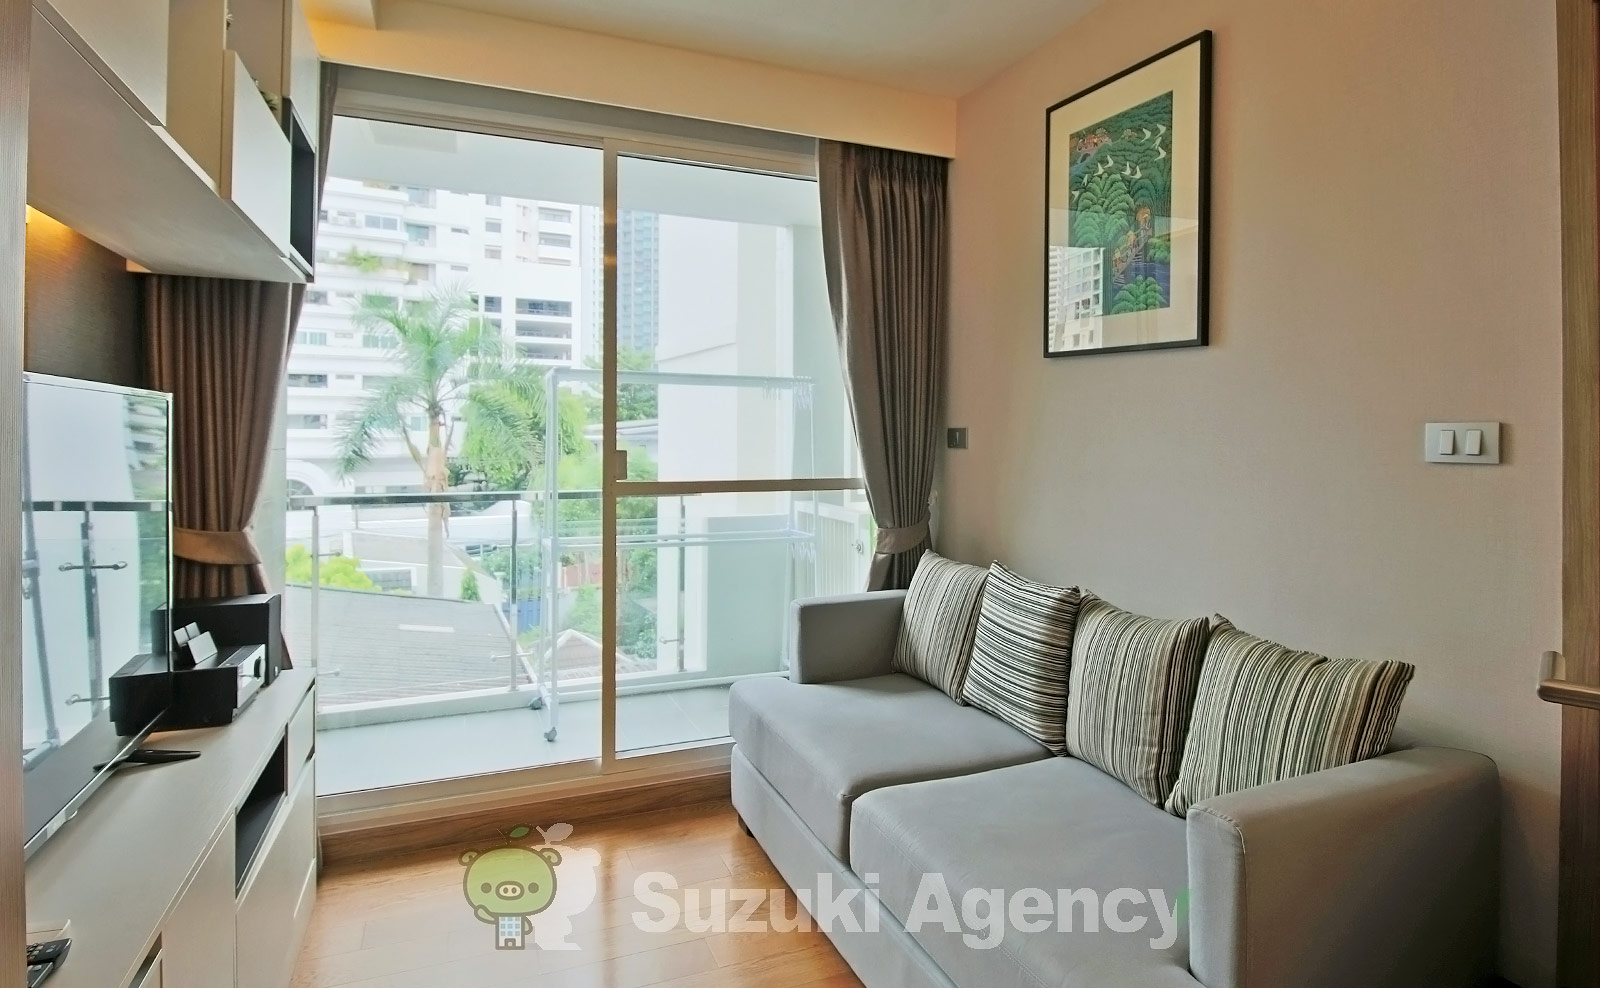 InterLux Premier Sukhumvit 13:1Bed Room Photos No.2